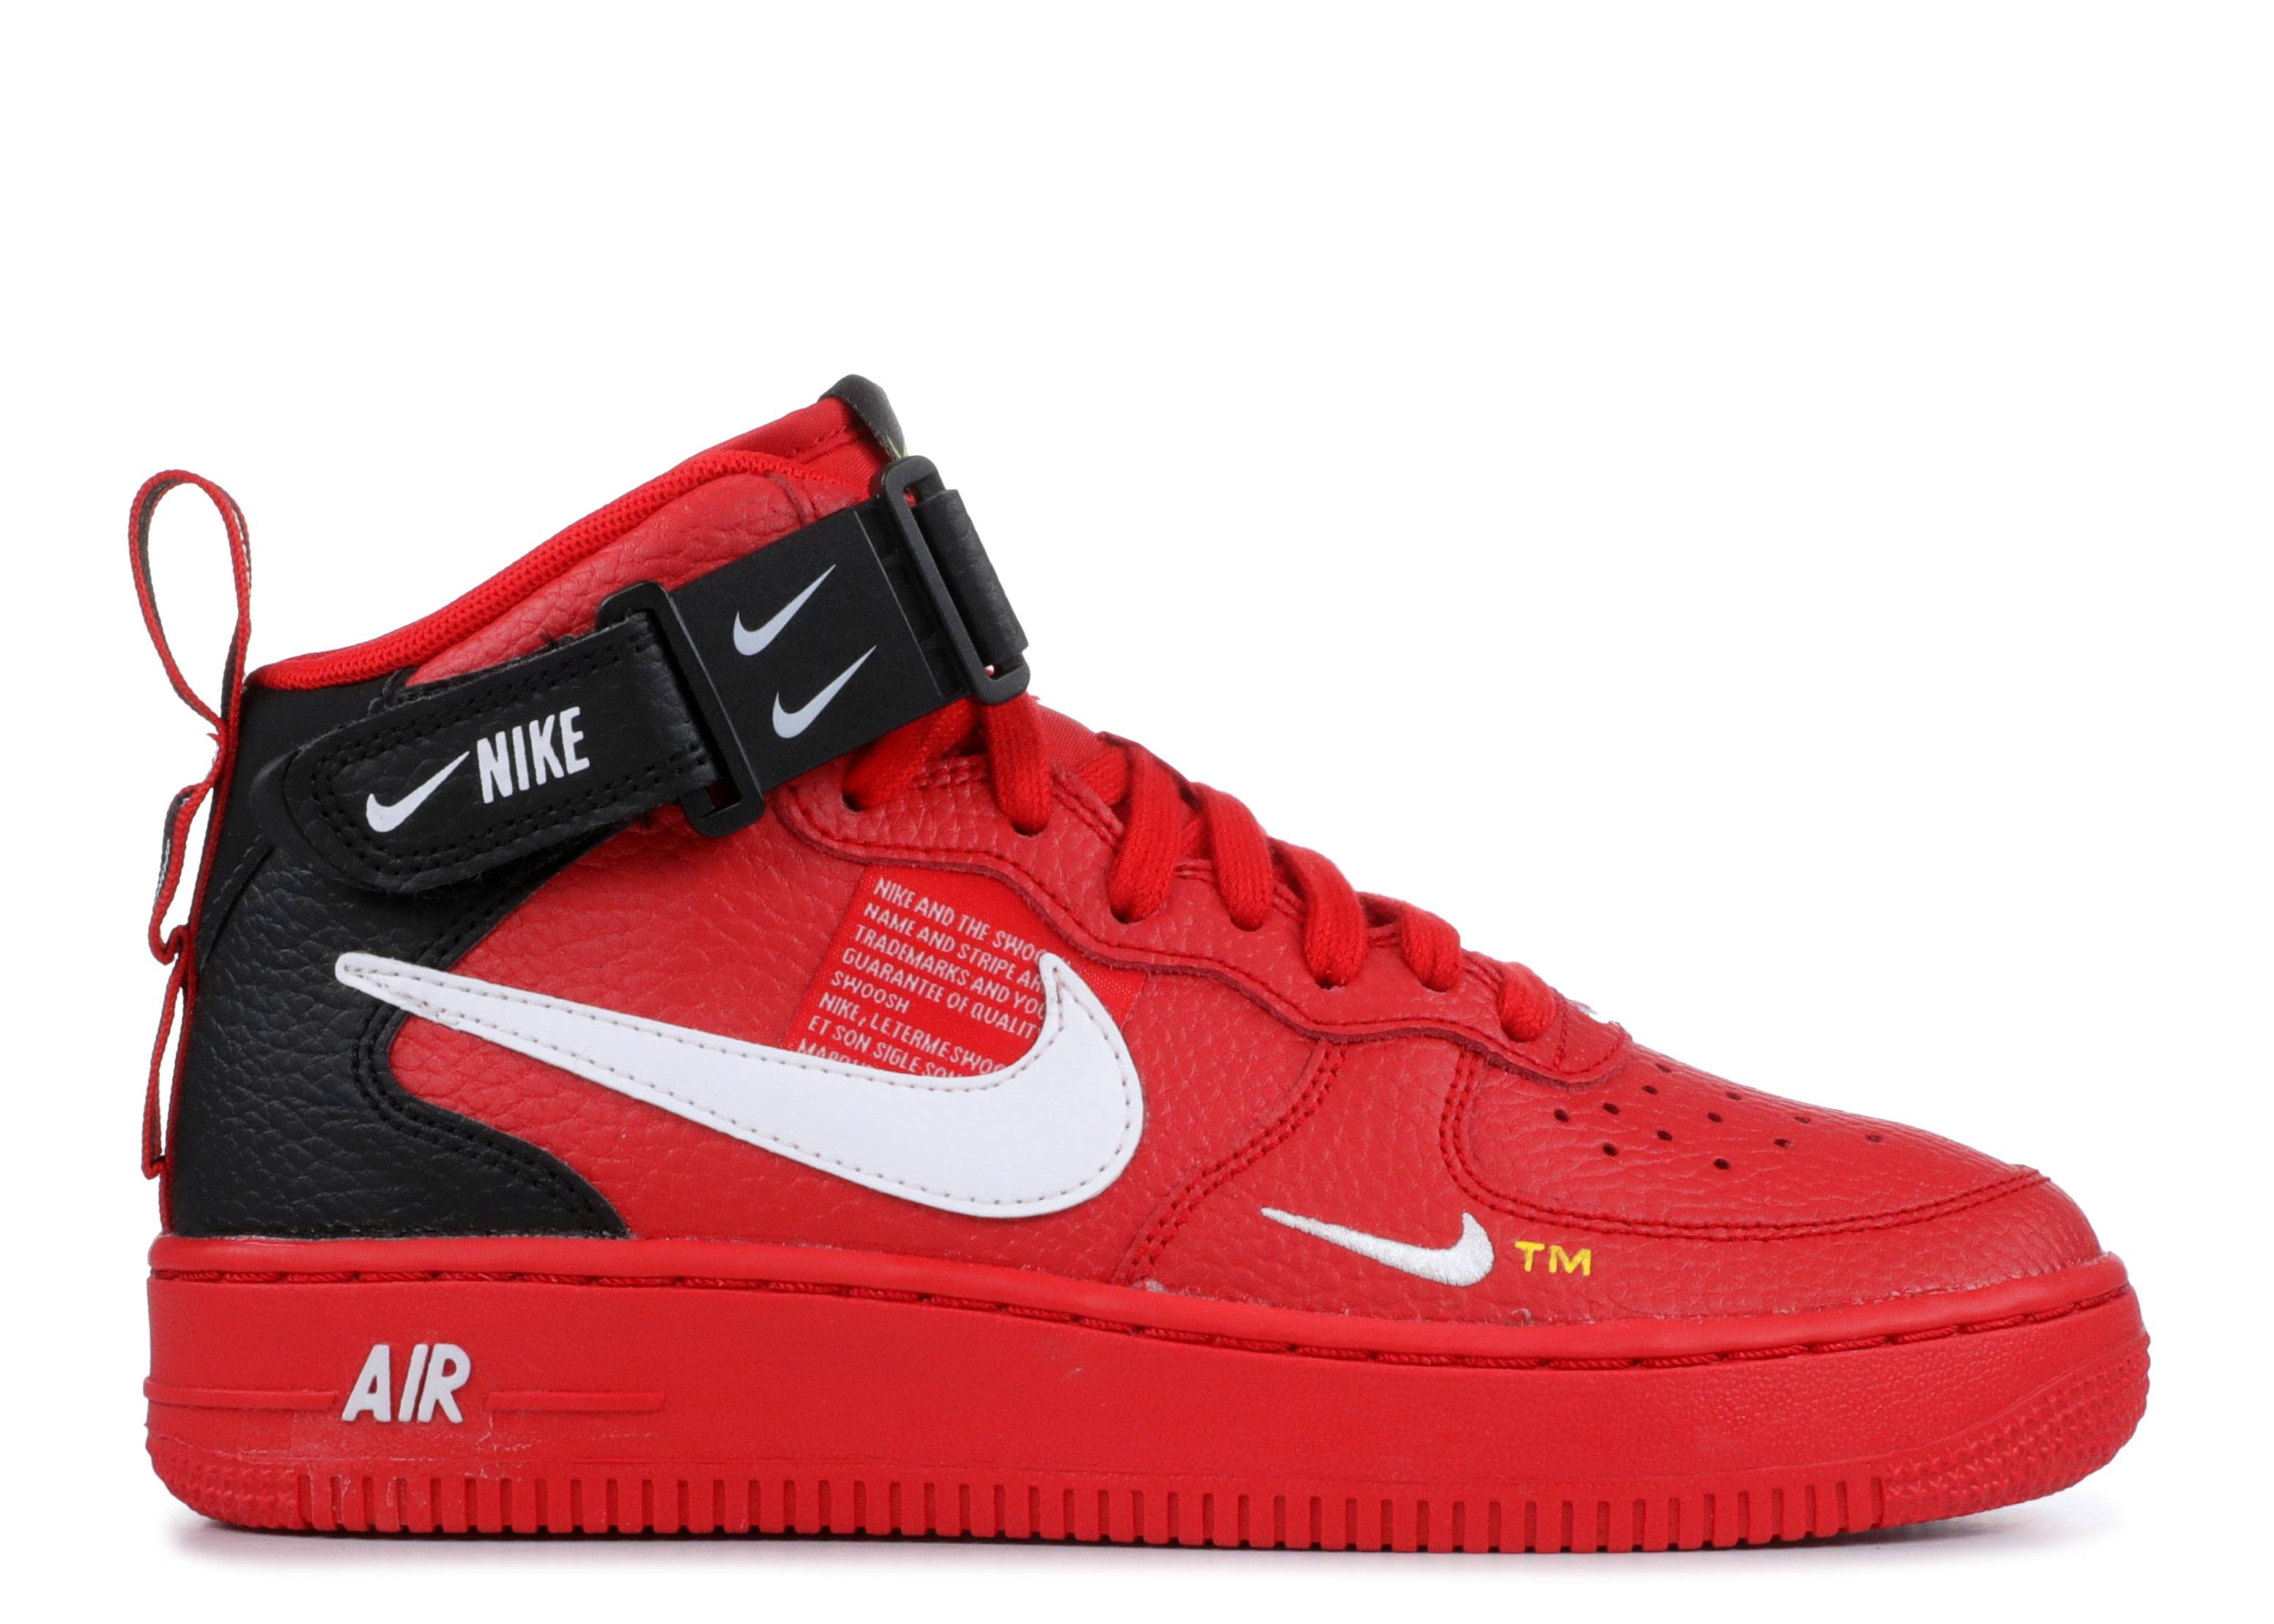 907a60df815 Air Force 1 Mid Lv8 (gs) - Nike - av3803 600 - university red white ...